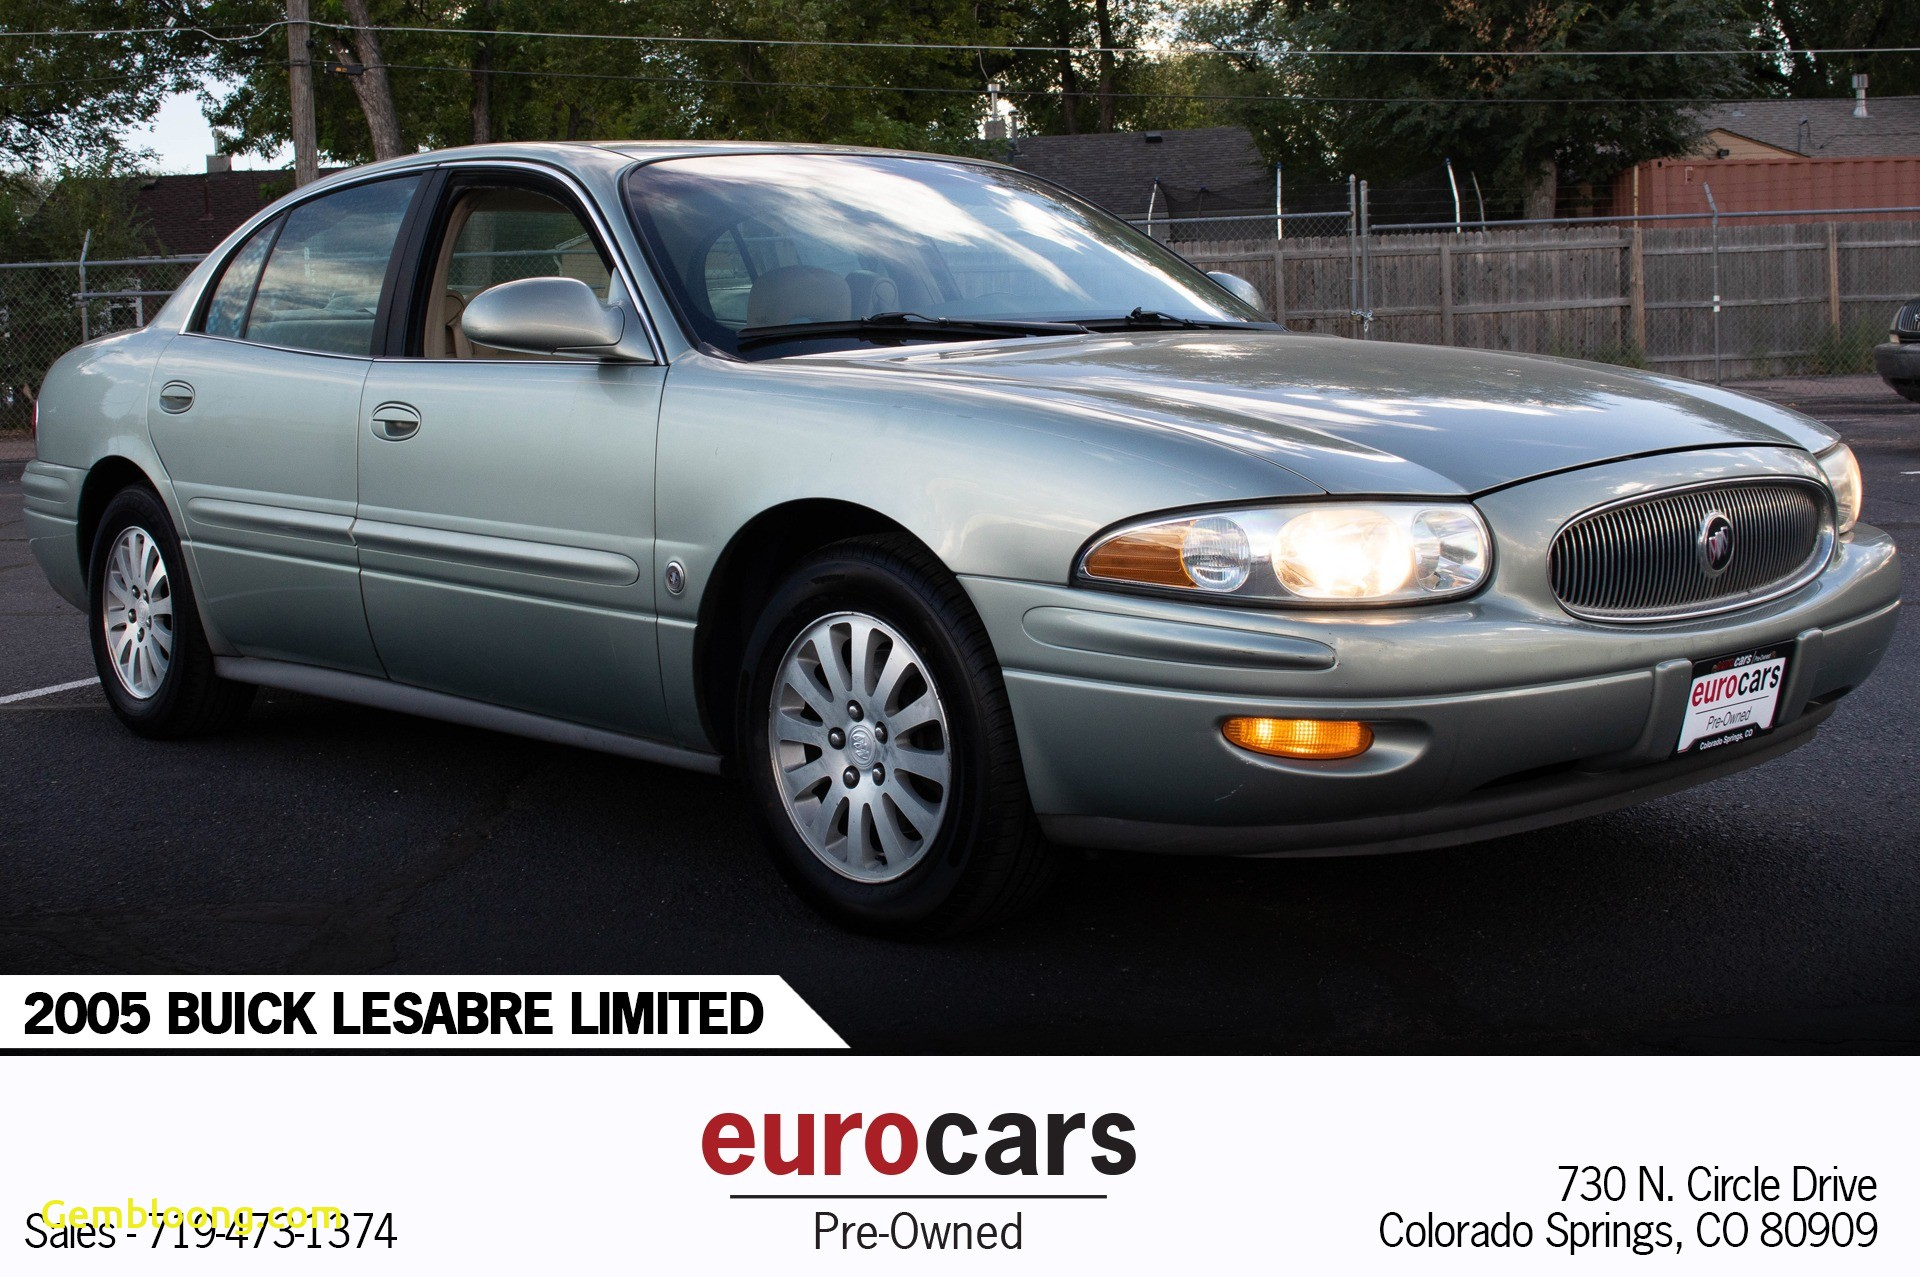 Buick Lesabre Luxury 2005 Buick Lesabre Limited Stock E B for Sale Near